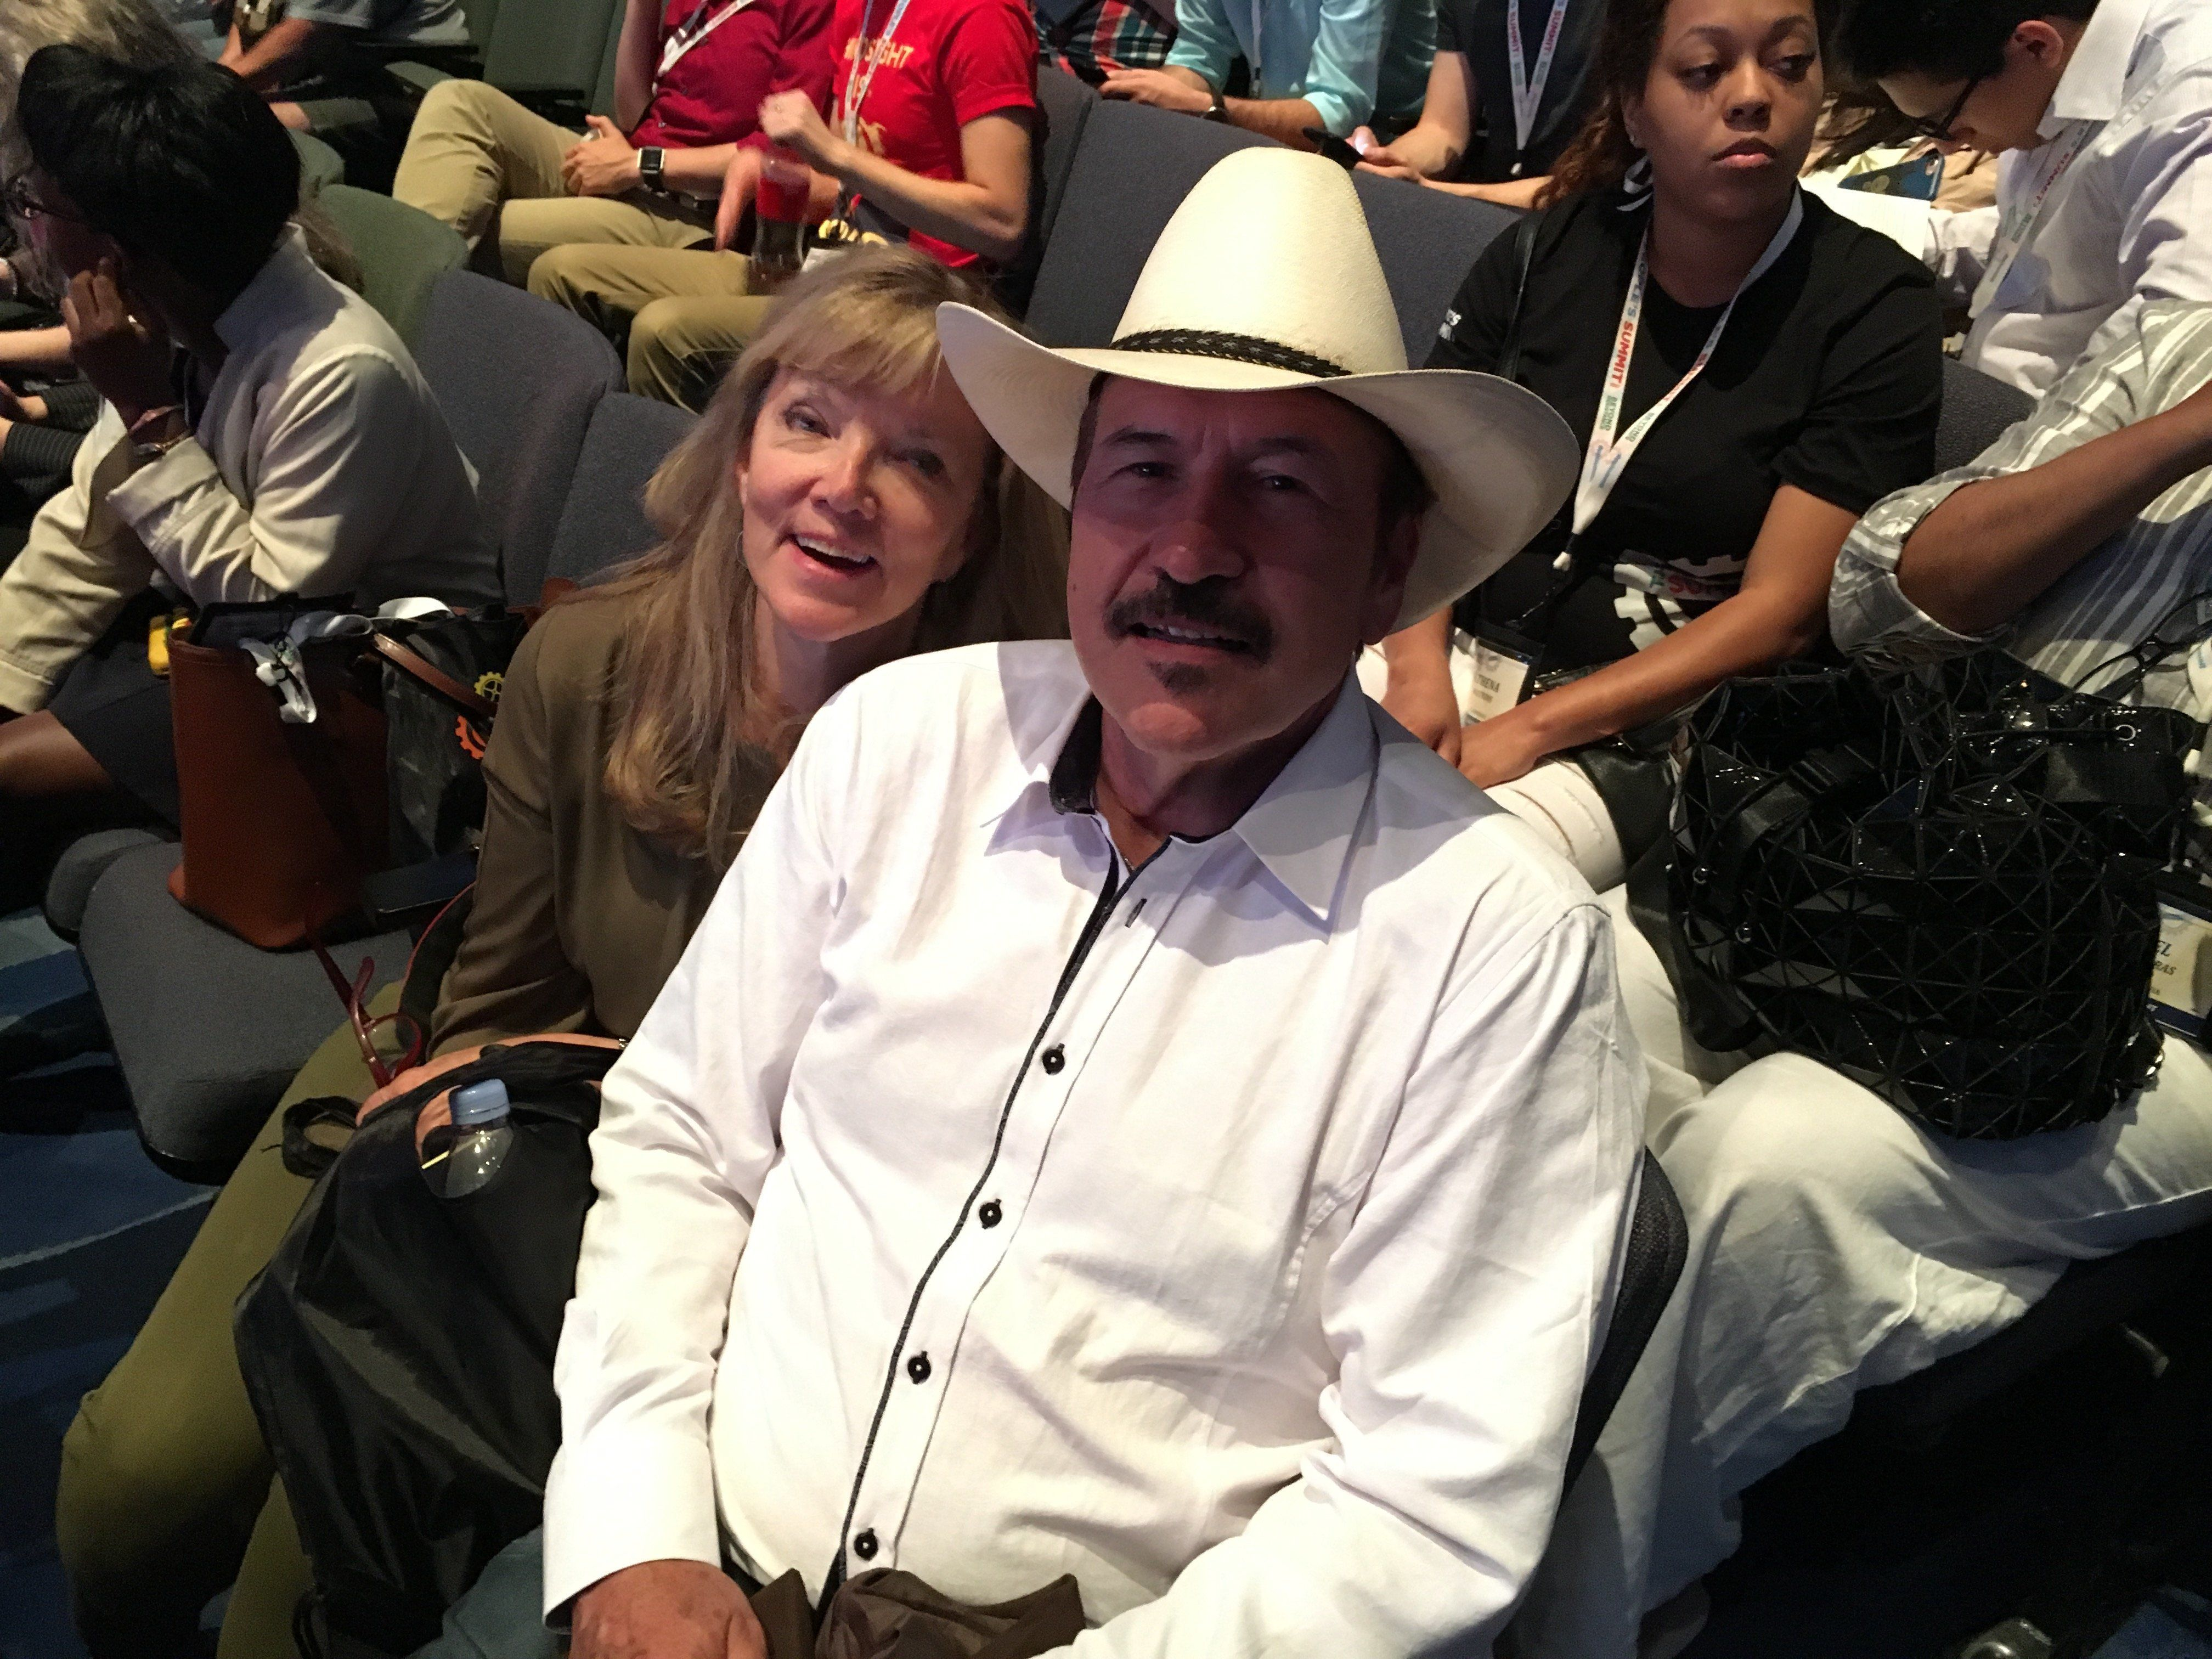 Montana Democrat Rob Quist and Bonni Willows, his wife, at the progressive People's Summit in Chicago on Saturday.